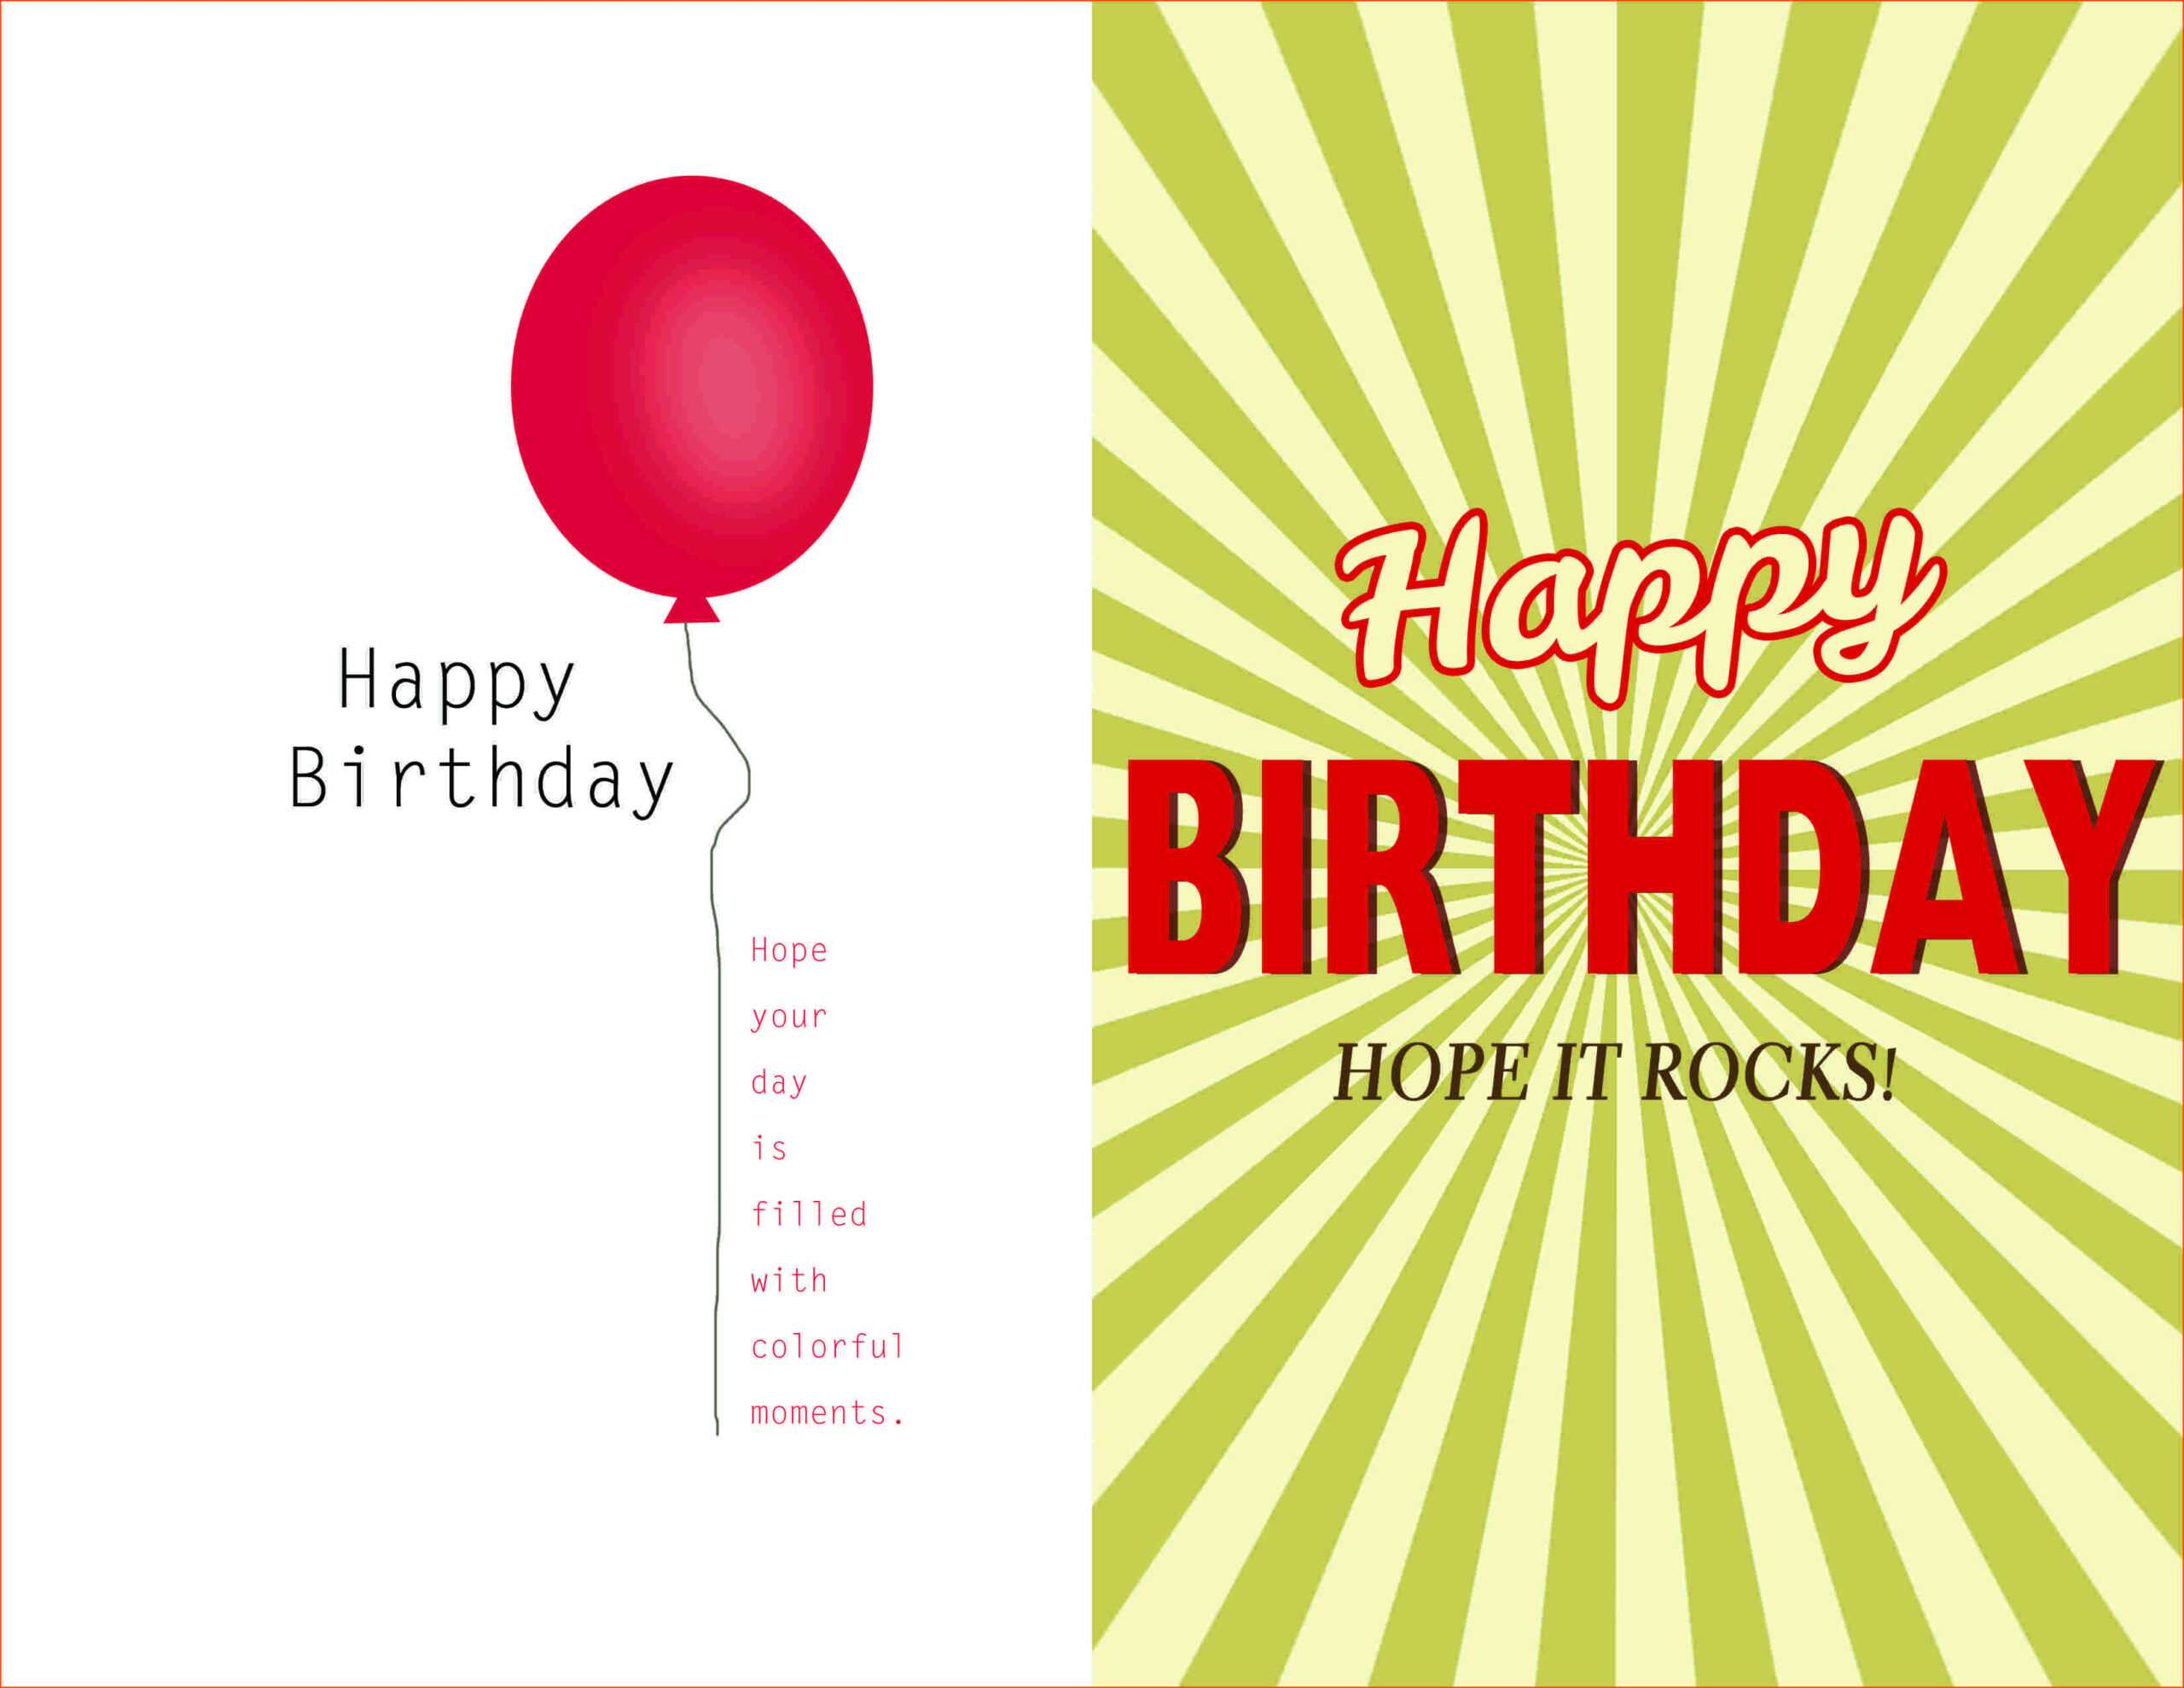 Awesome Quarter Fold Birthday Card Template Free Download inside Quarter Fold Greeting Card Template